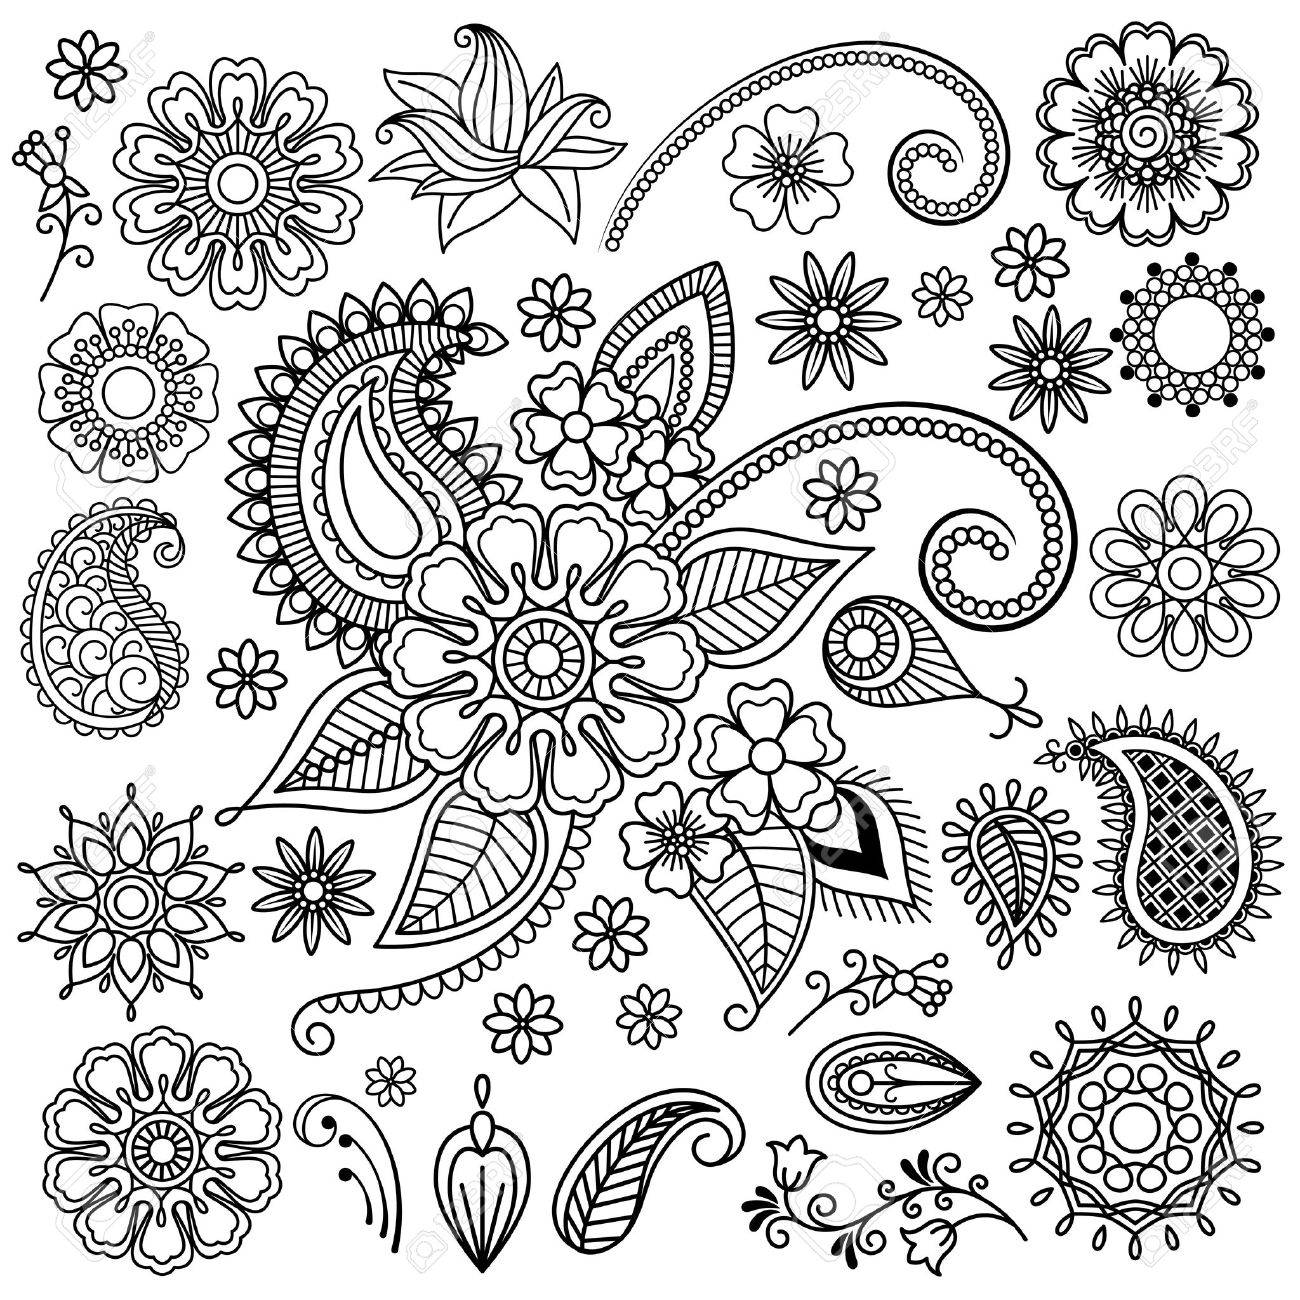 Henna 6x8 FT Photo Backdrops,Flowers and Paisley Pattern Doodles in Various Shapes and Designs Monochrome Image Background for Photography Kids Adult Photo Booth Video Shoot Vinyl Studio Props